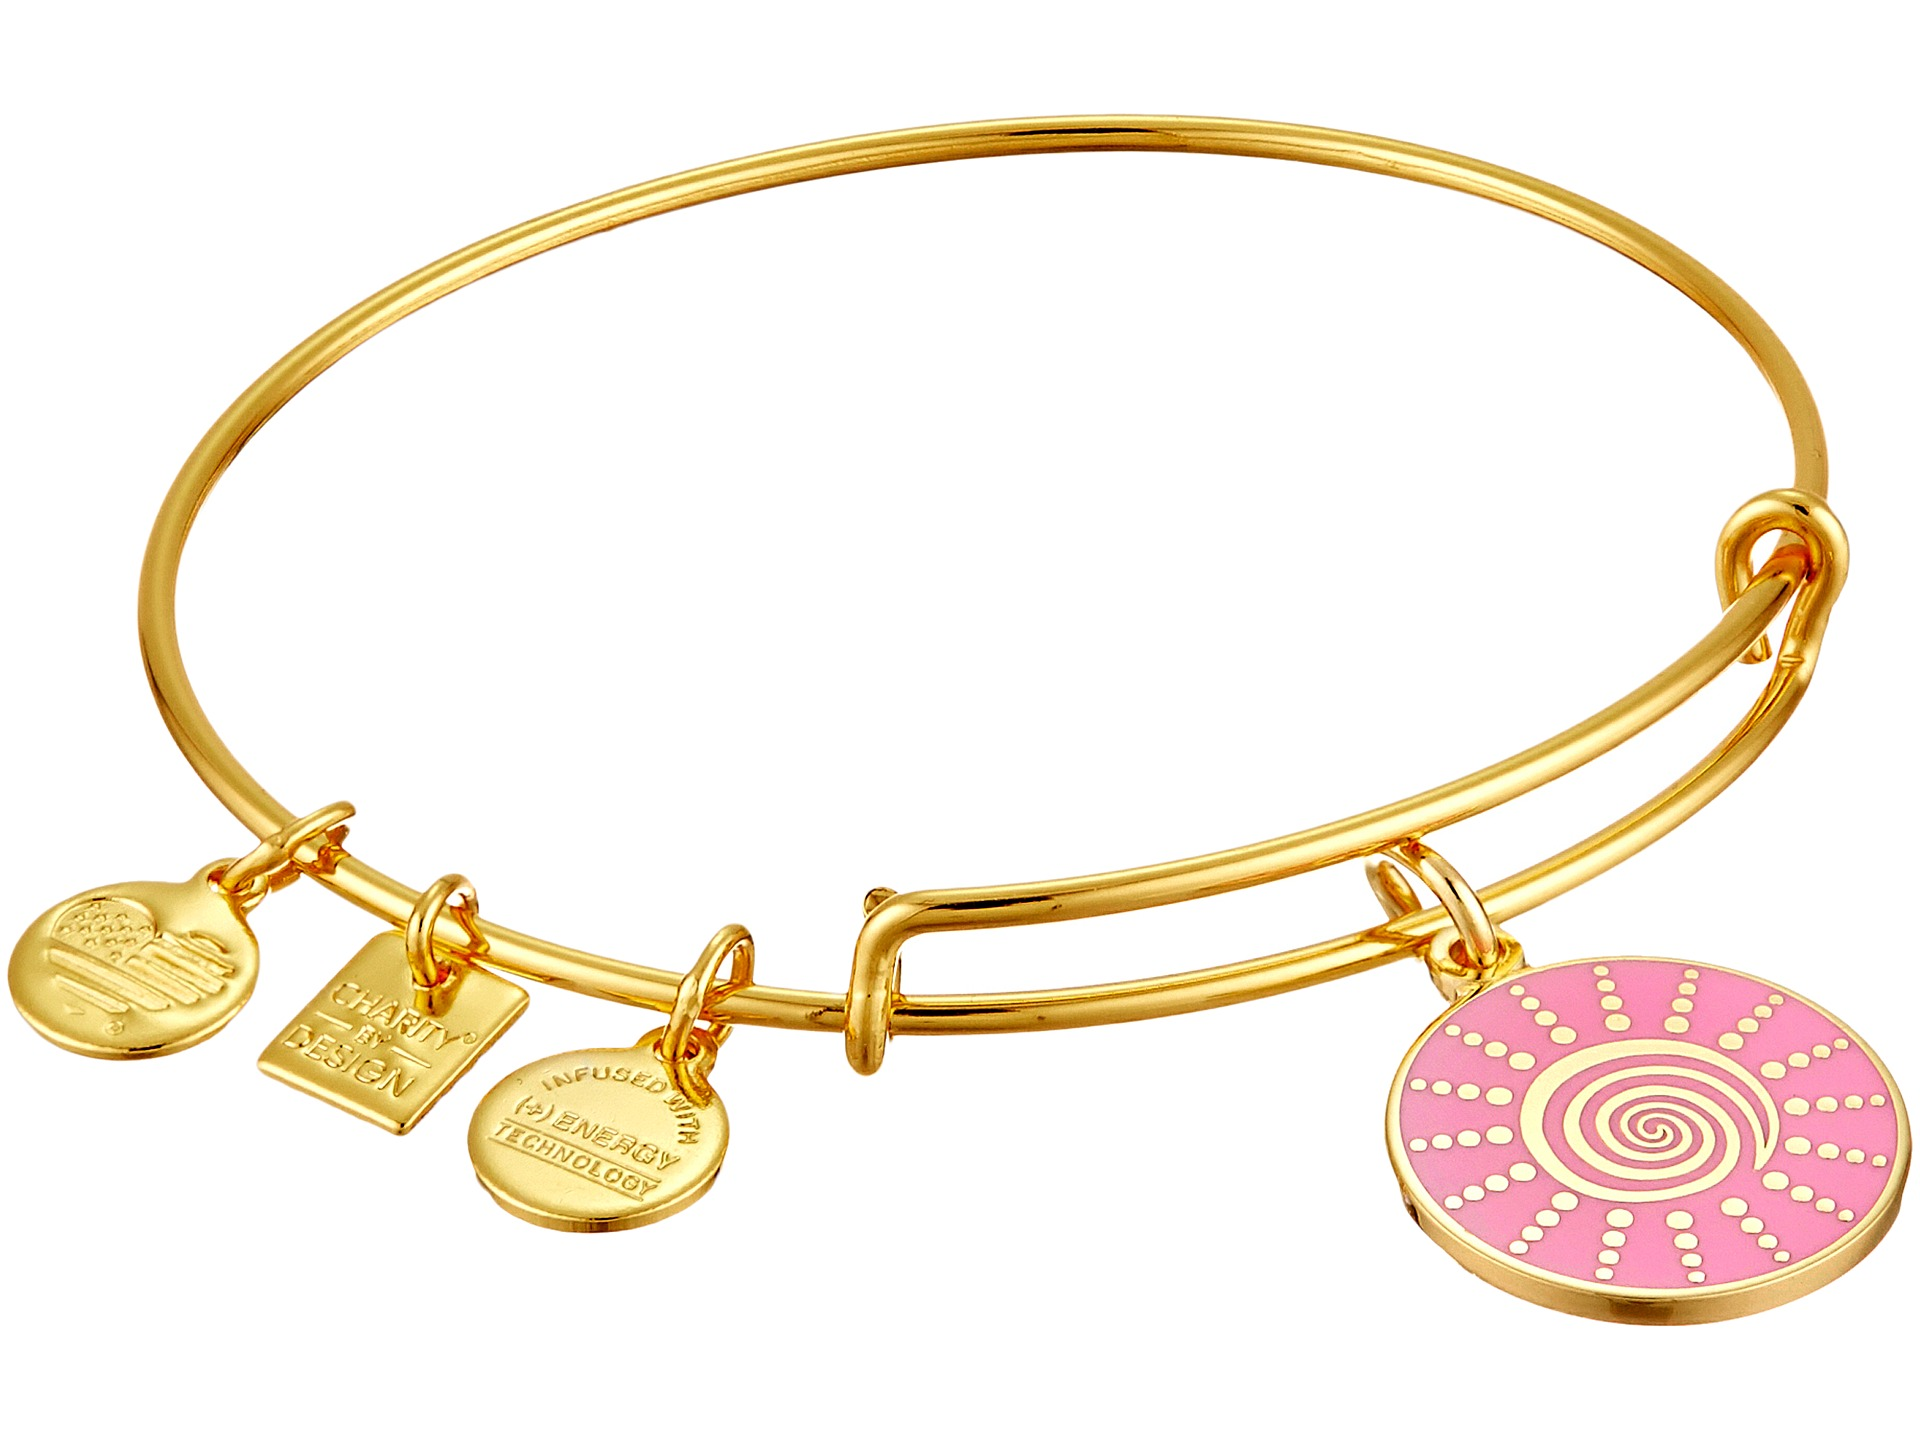 Alex And Ani Charity By Design  Spiral Sun Expandable Charm Bangle Bracelet  At Zappos